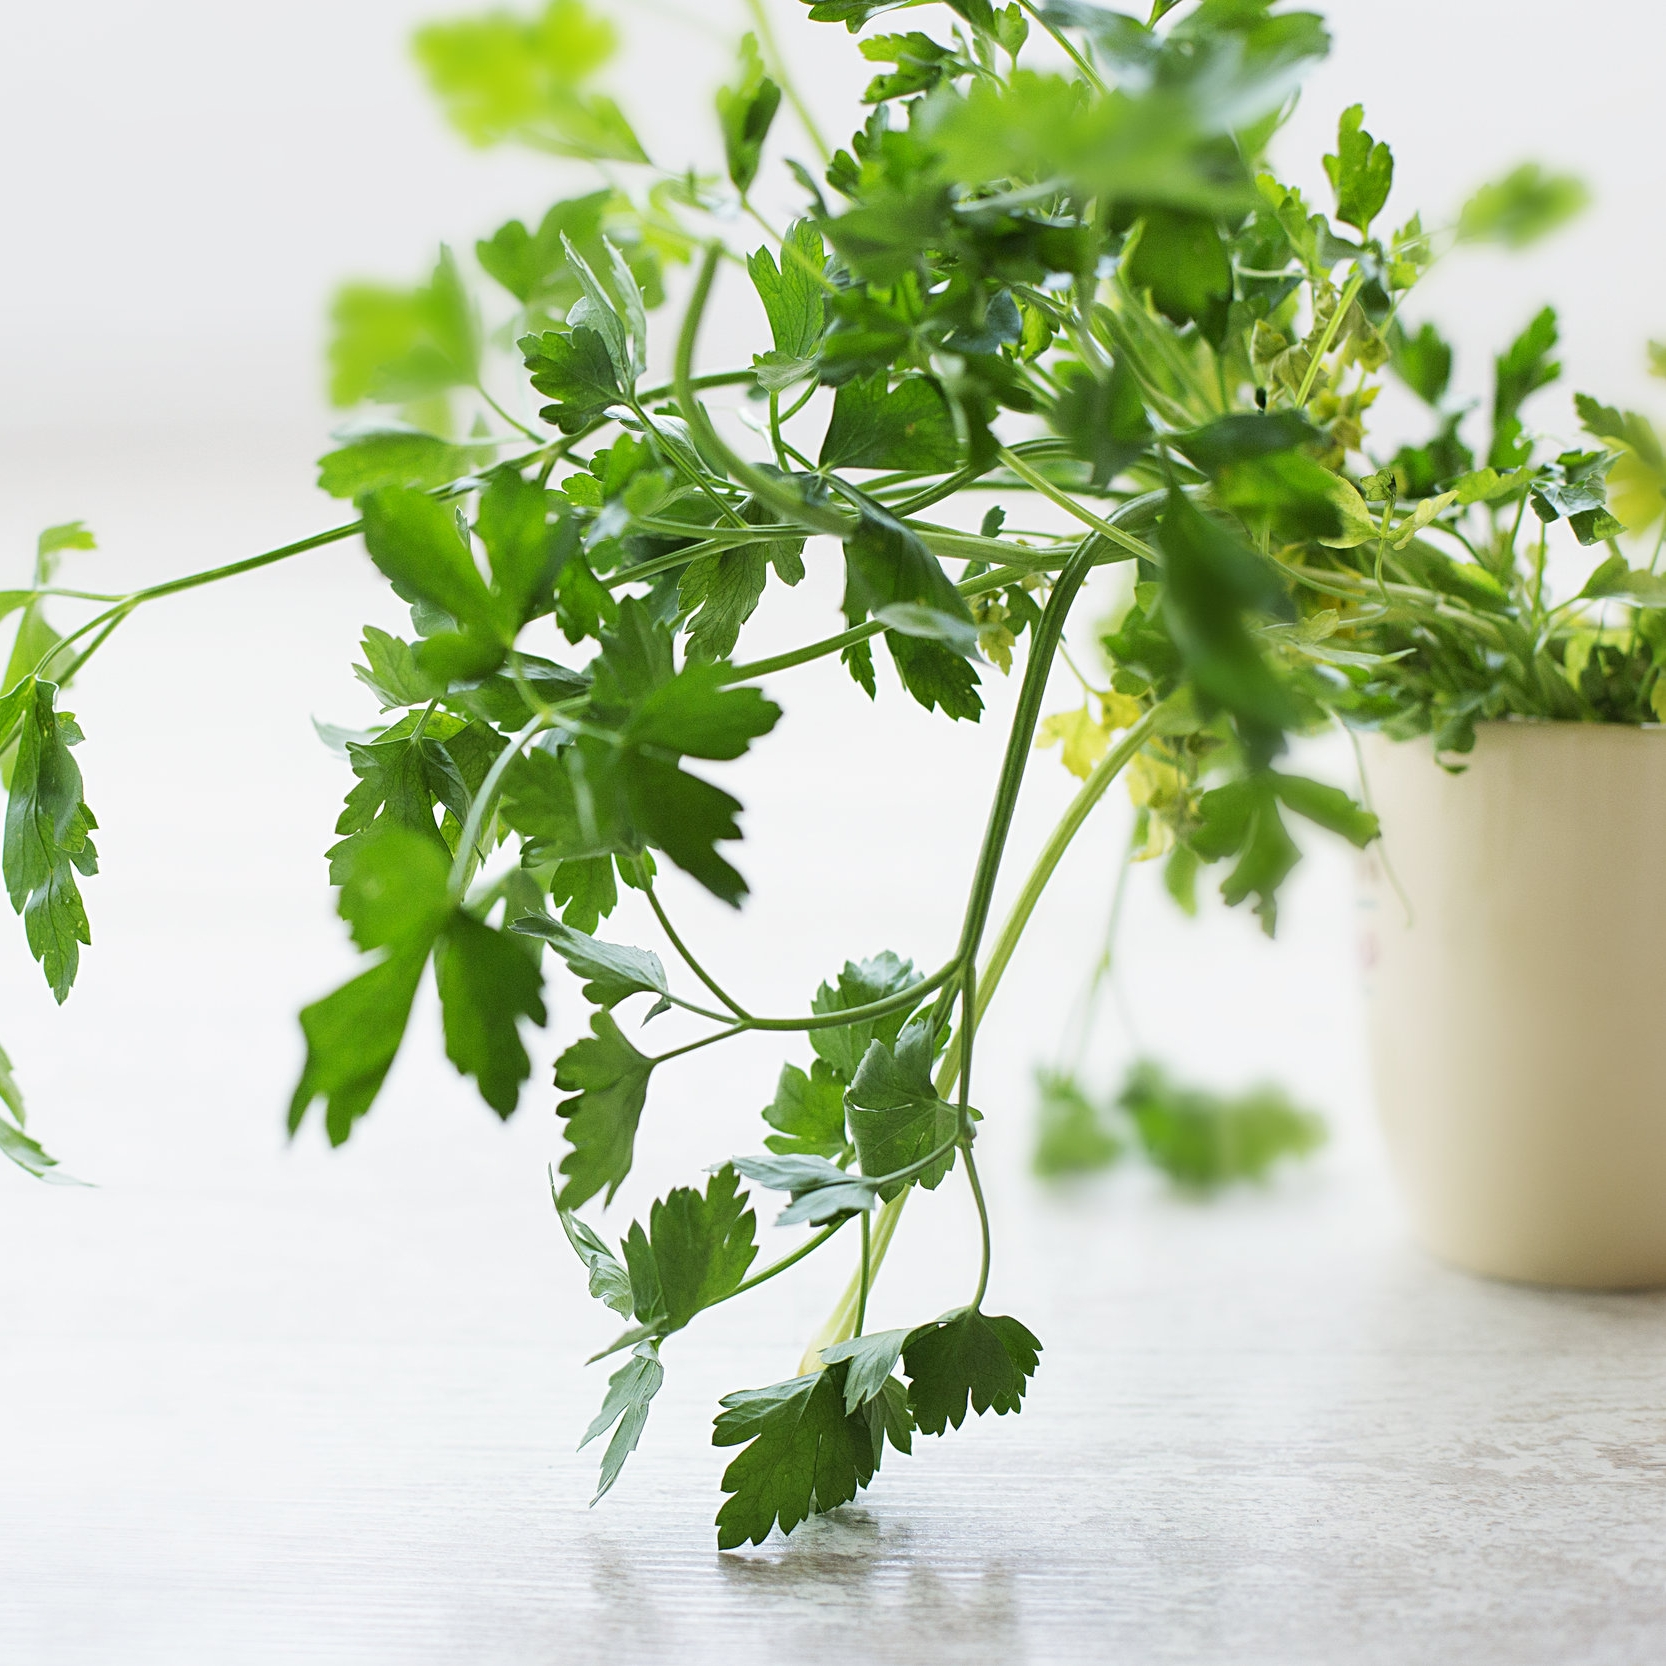 Tip #43The Herb Saver - Fresh herbs last longer when kept dry. Wrap your herbs in a clean towel before bagging and placing in the fridge. Can extend the life of herbs like parsley, mint, rosemary or cilantro for days or weeks.